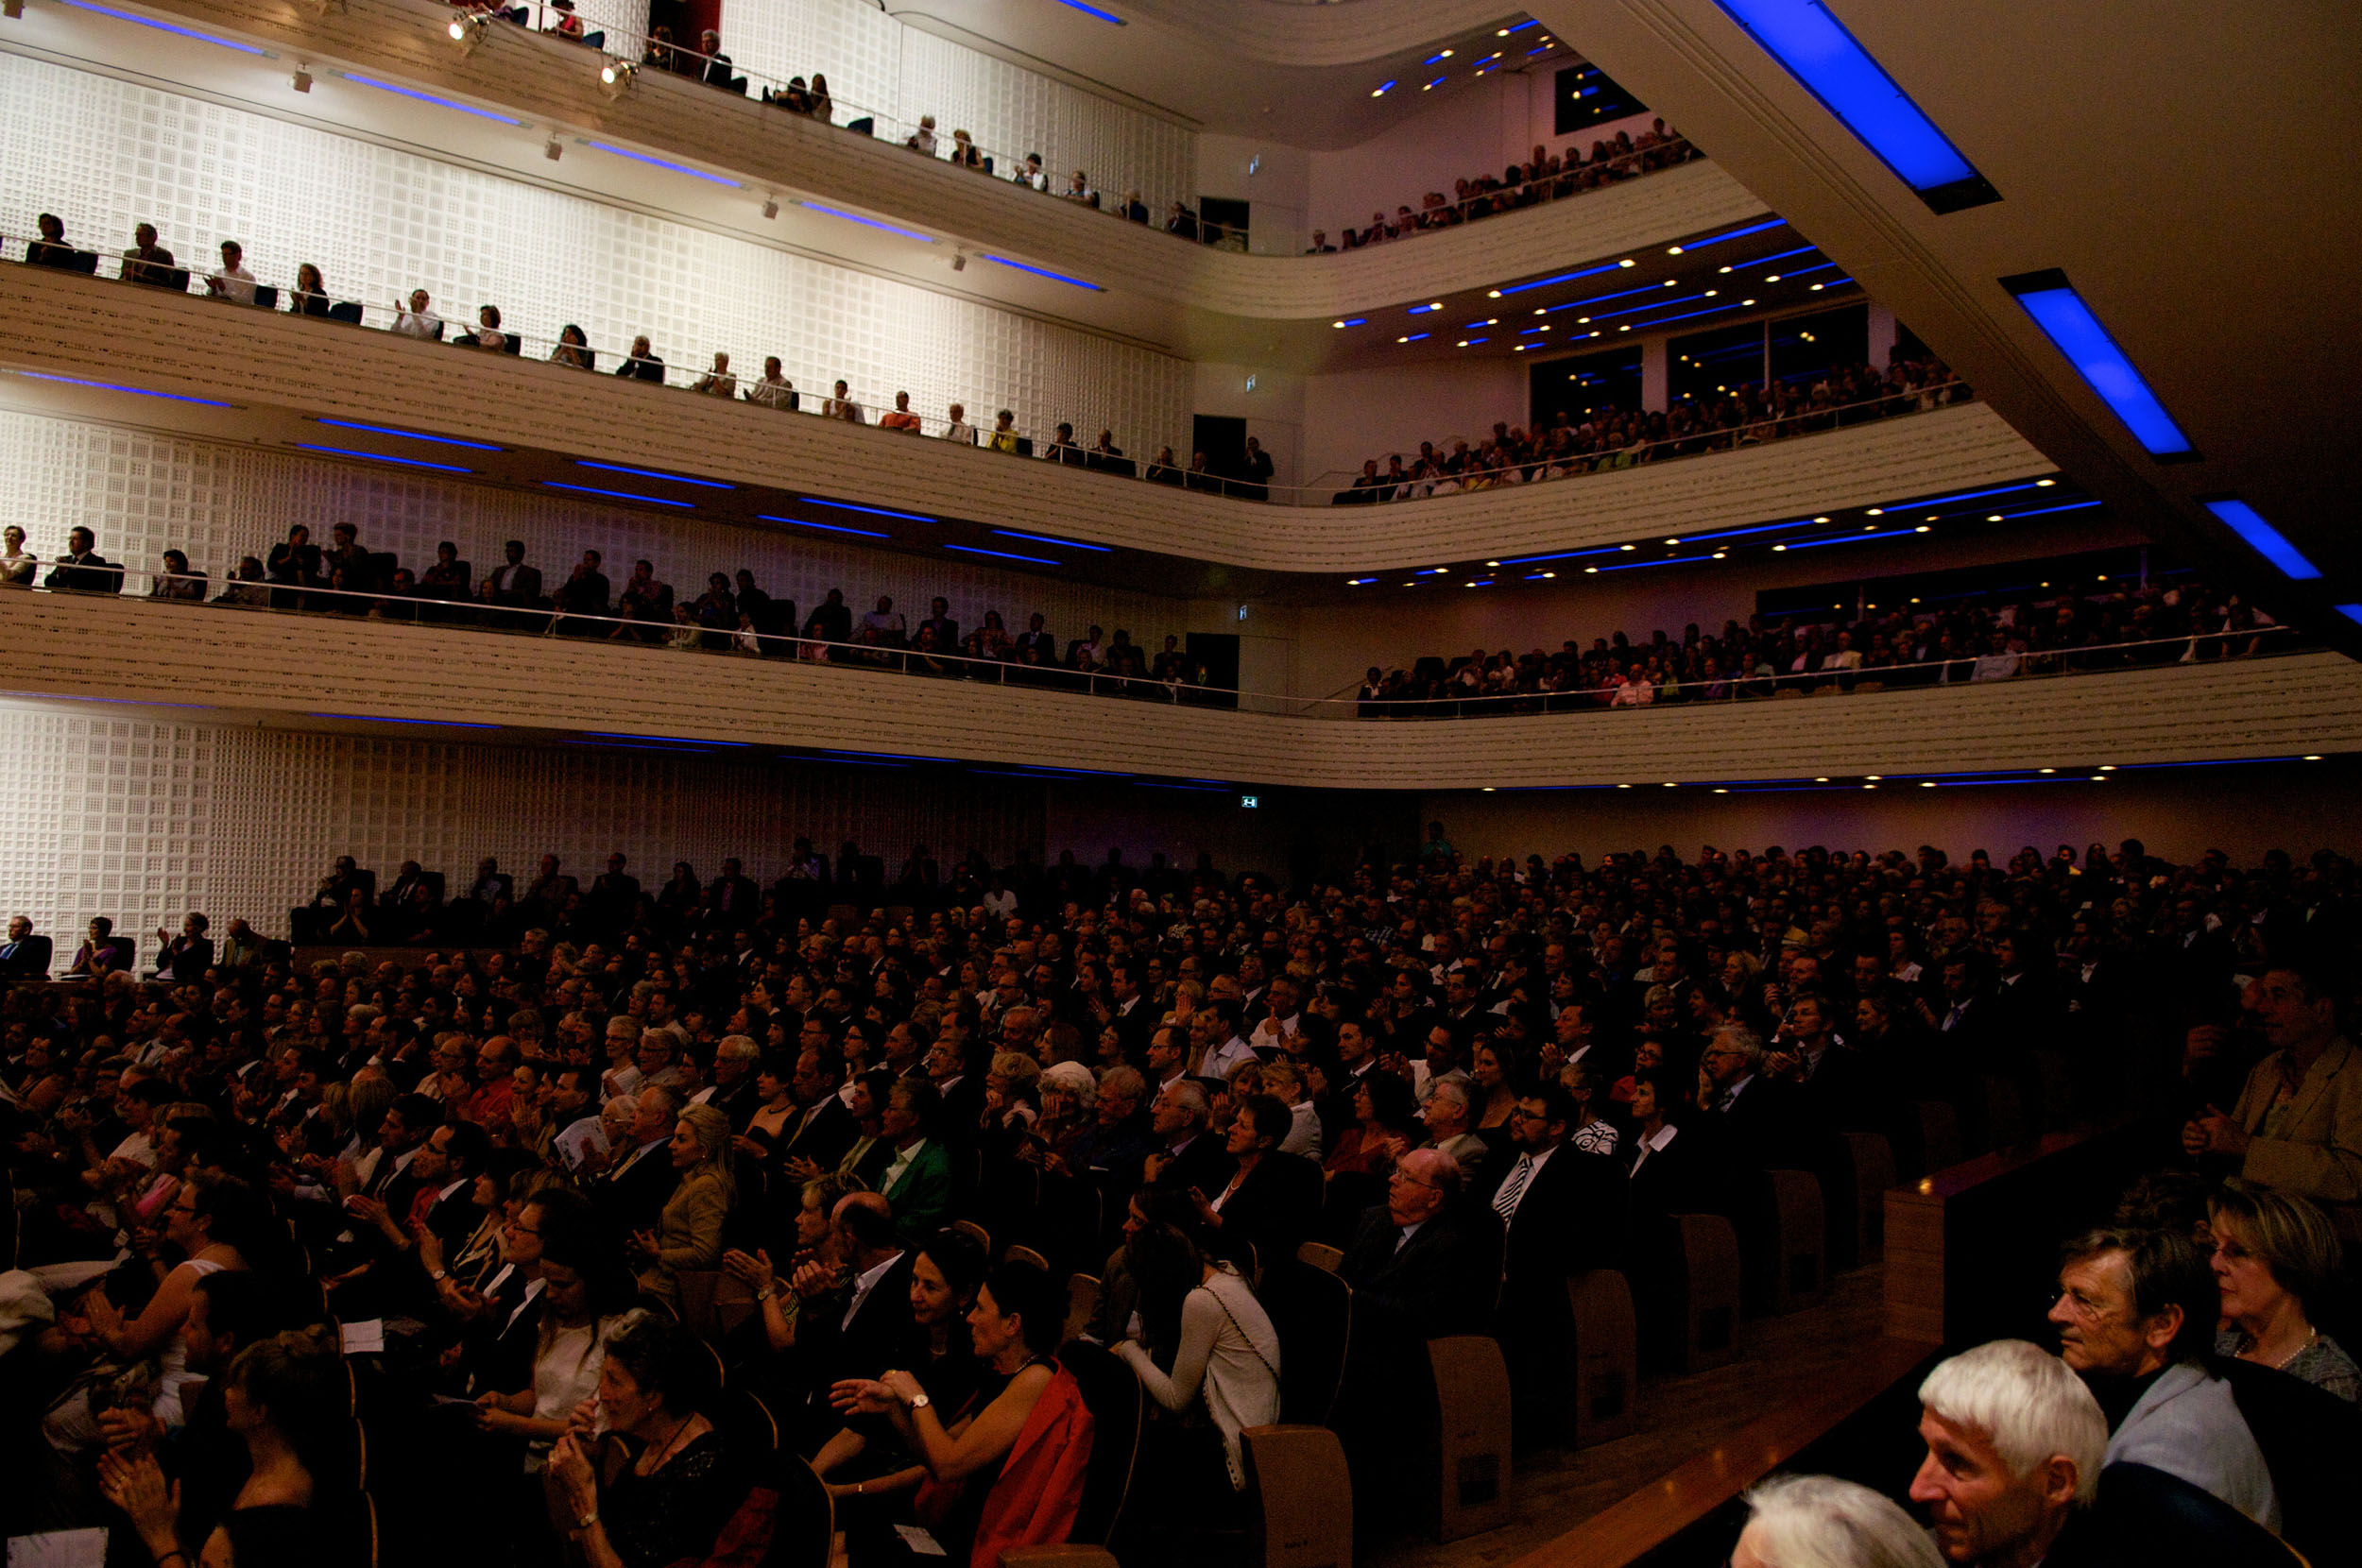 Human Rights Orchestra audience in Lucerne, Switzerland